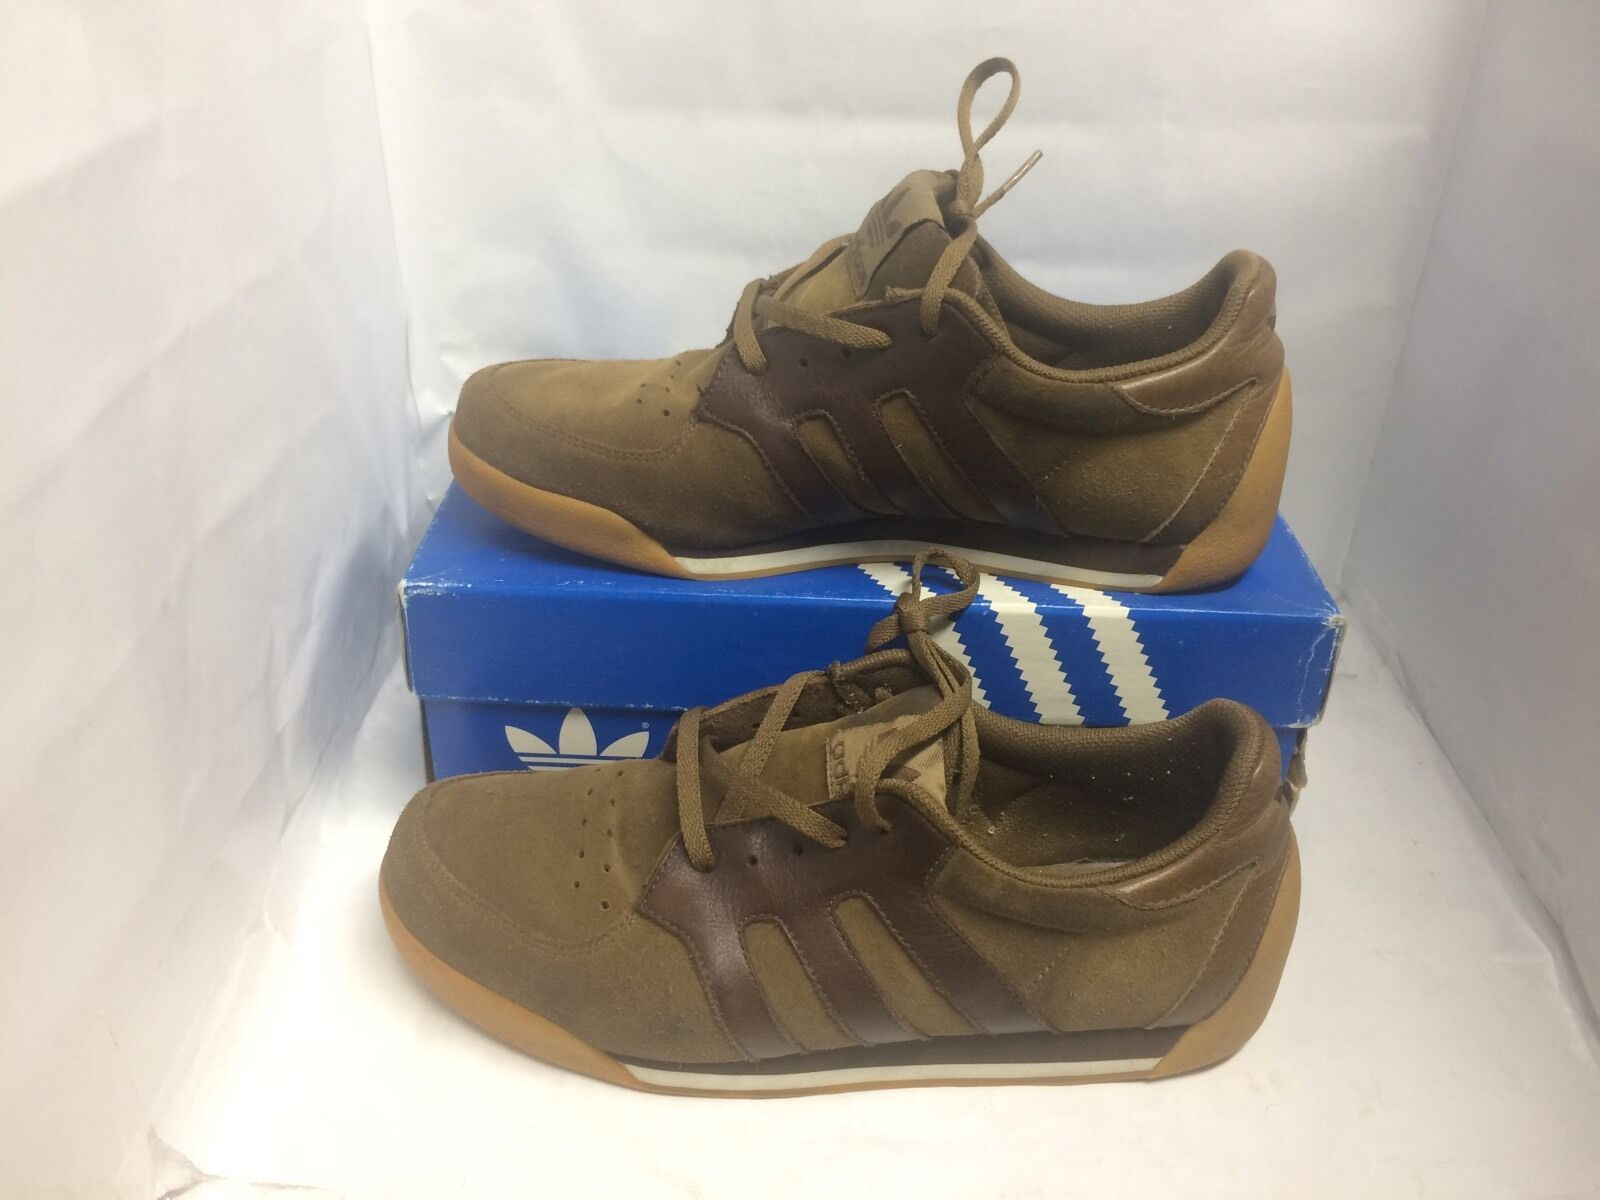 Adidas Provence GT Used Size 9 Supreme